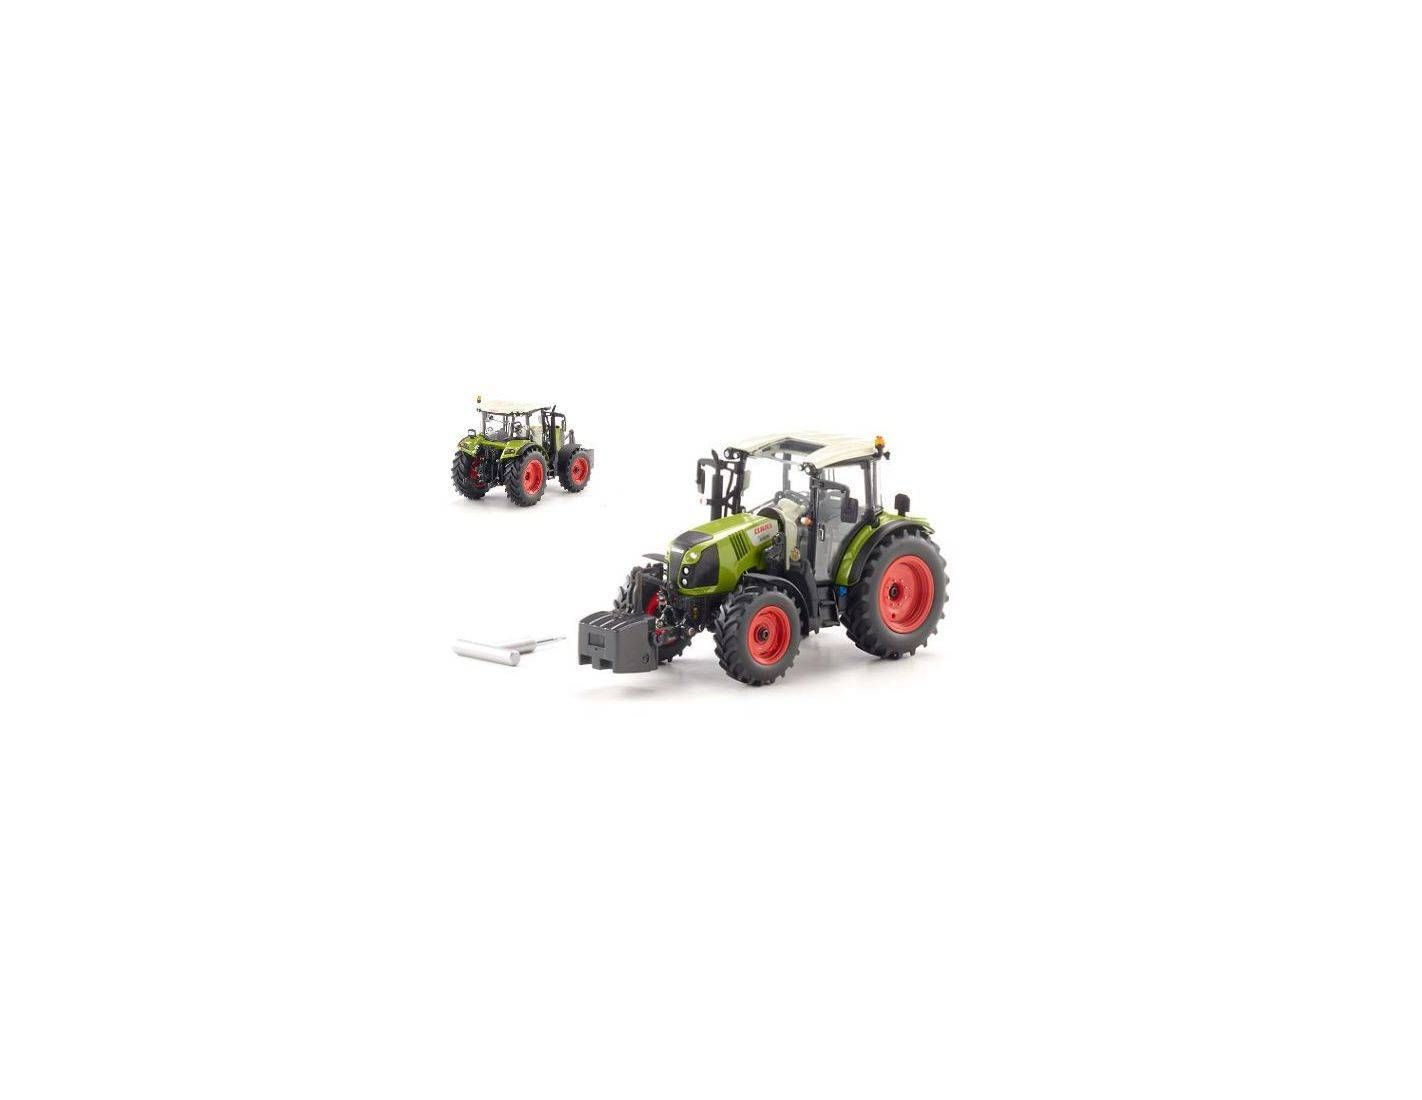 wiking wk7811 trattore claas arion 420 1 32 modellino